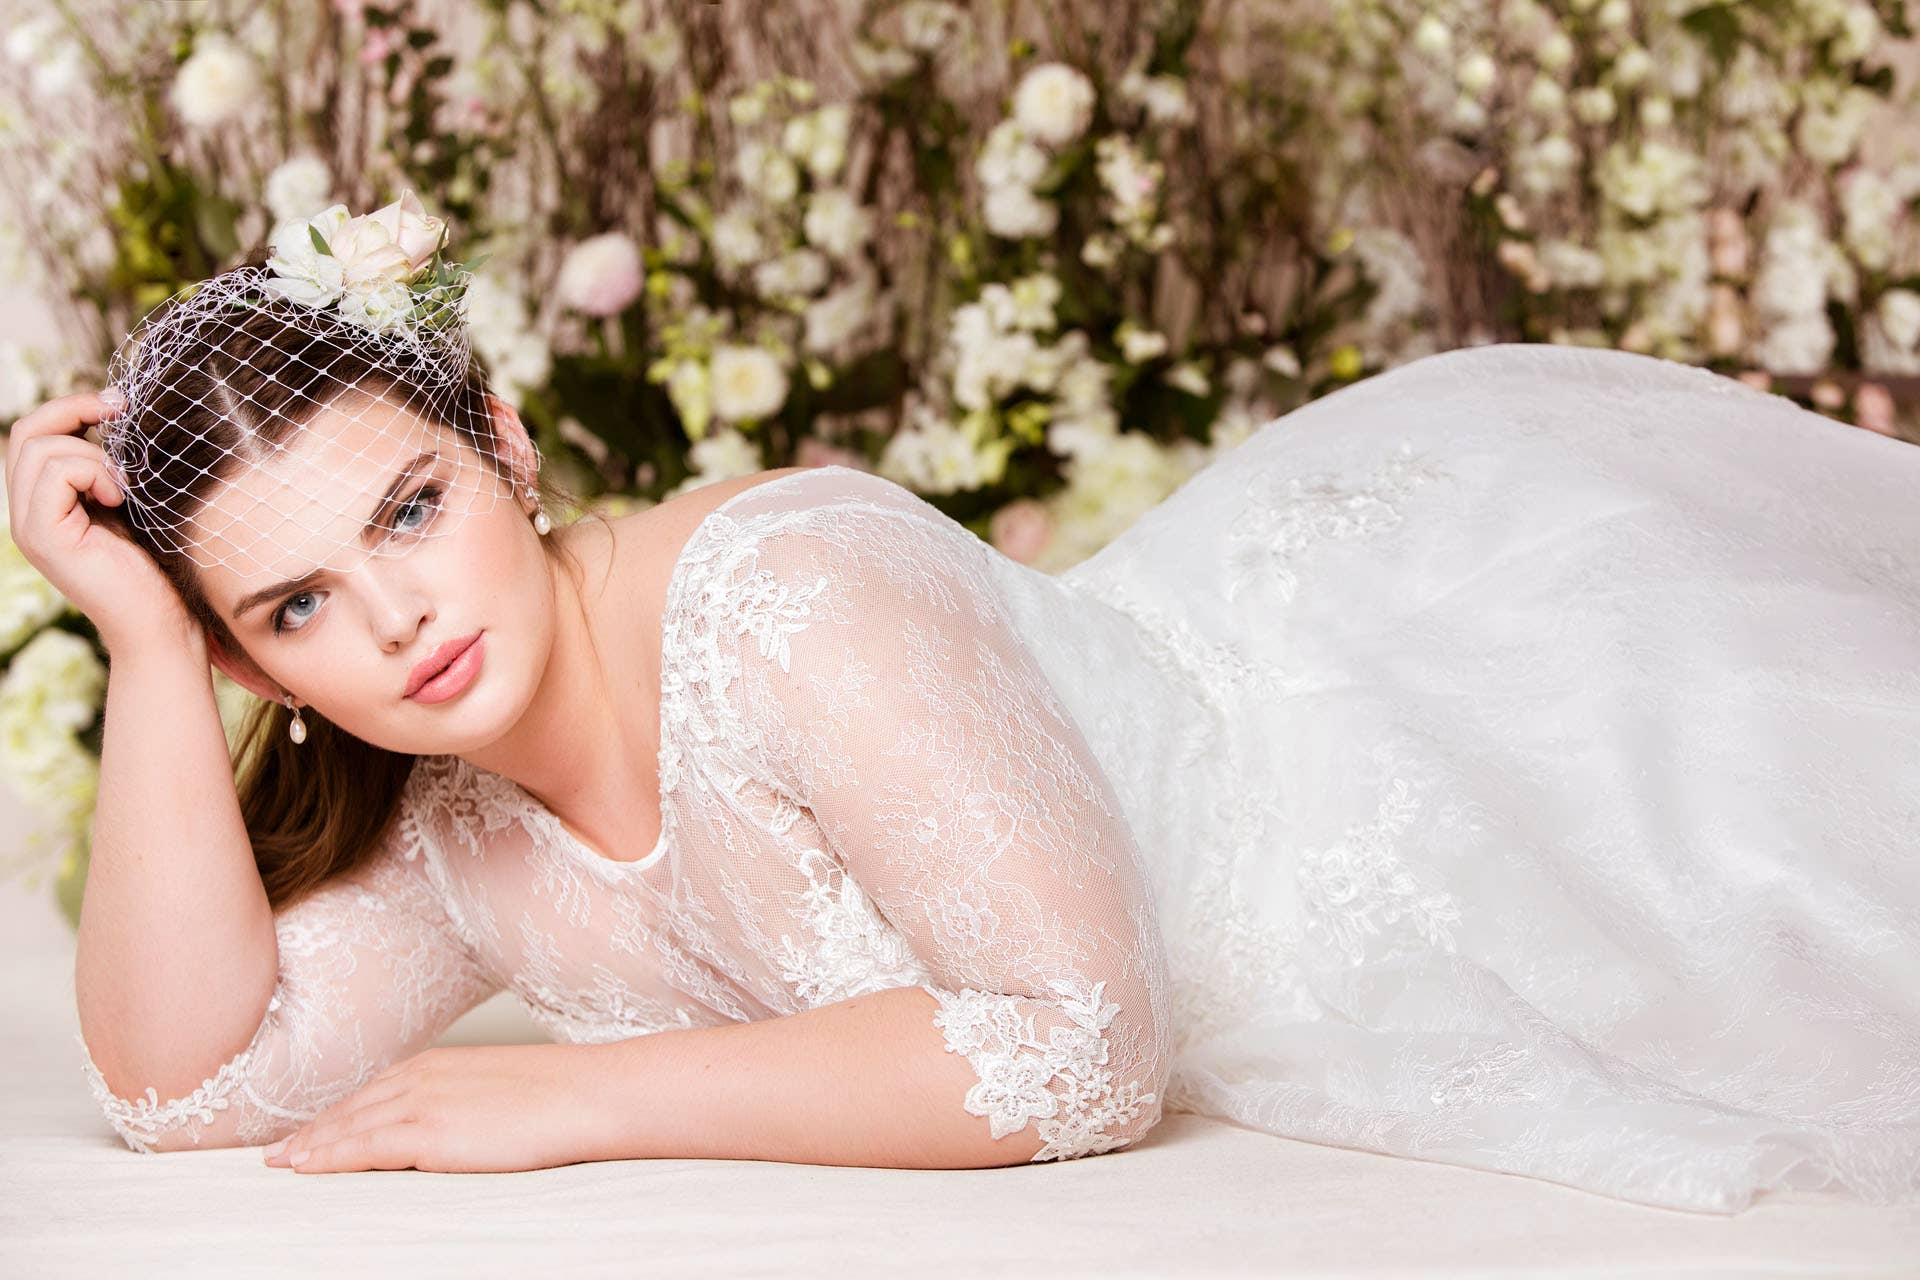 Celebrate your curves with our plus size wedding dresses